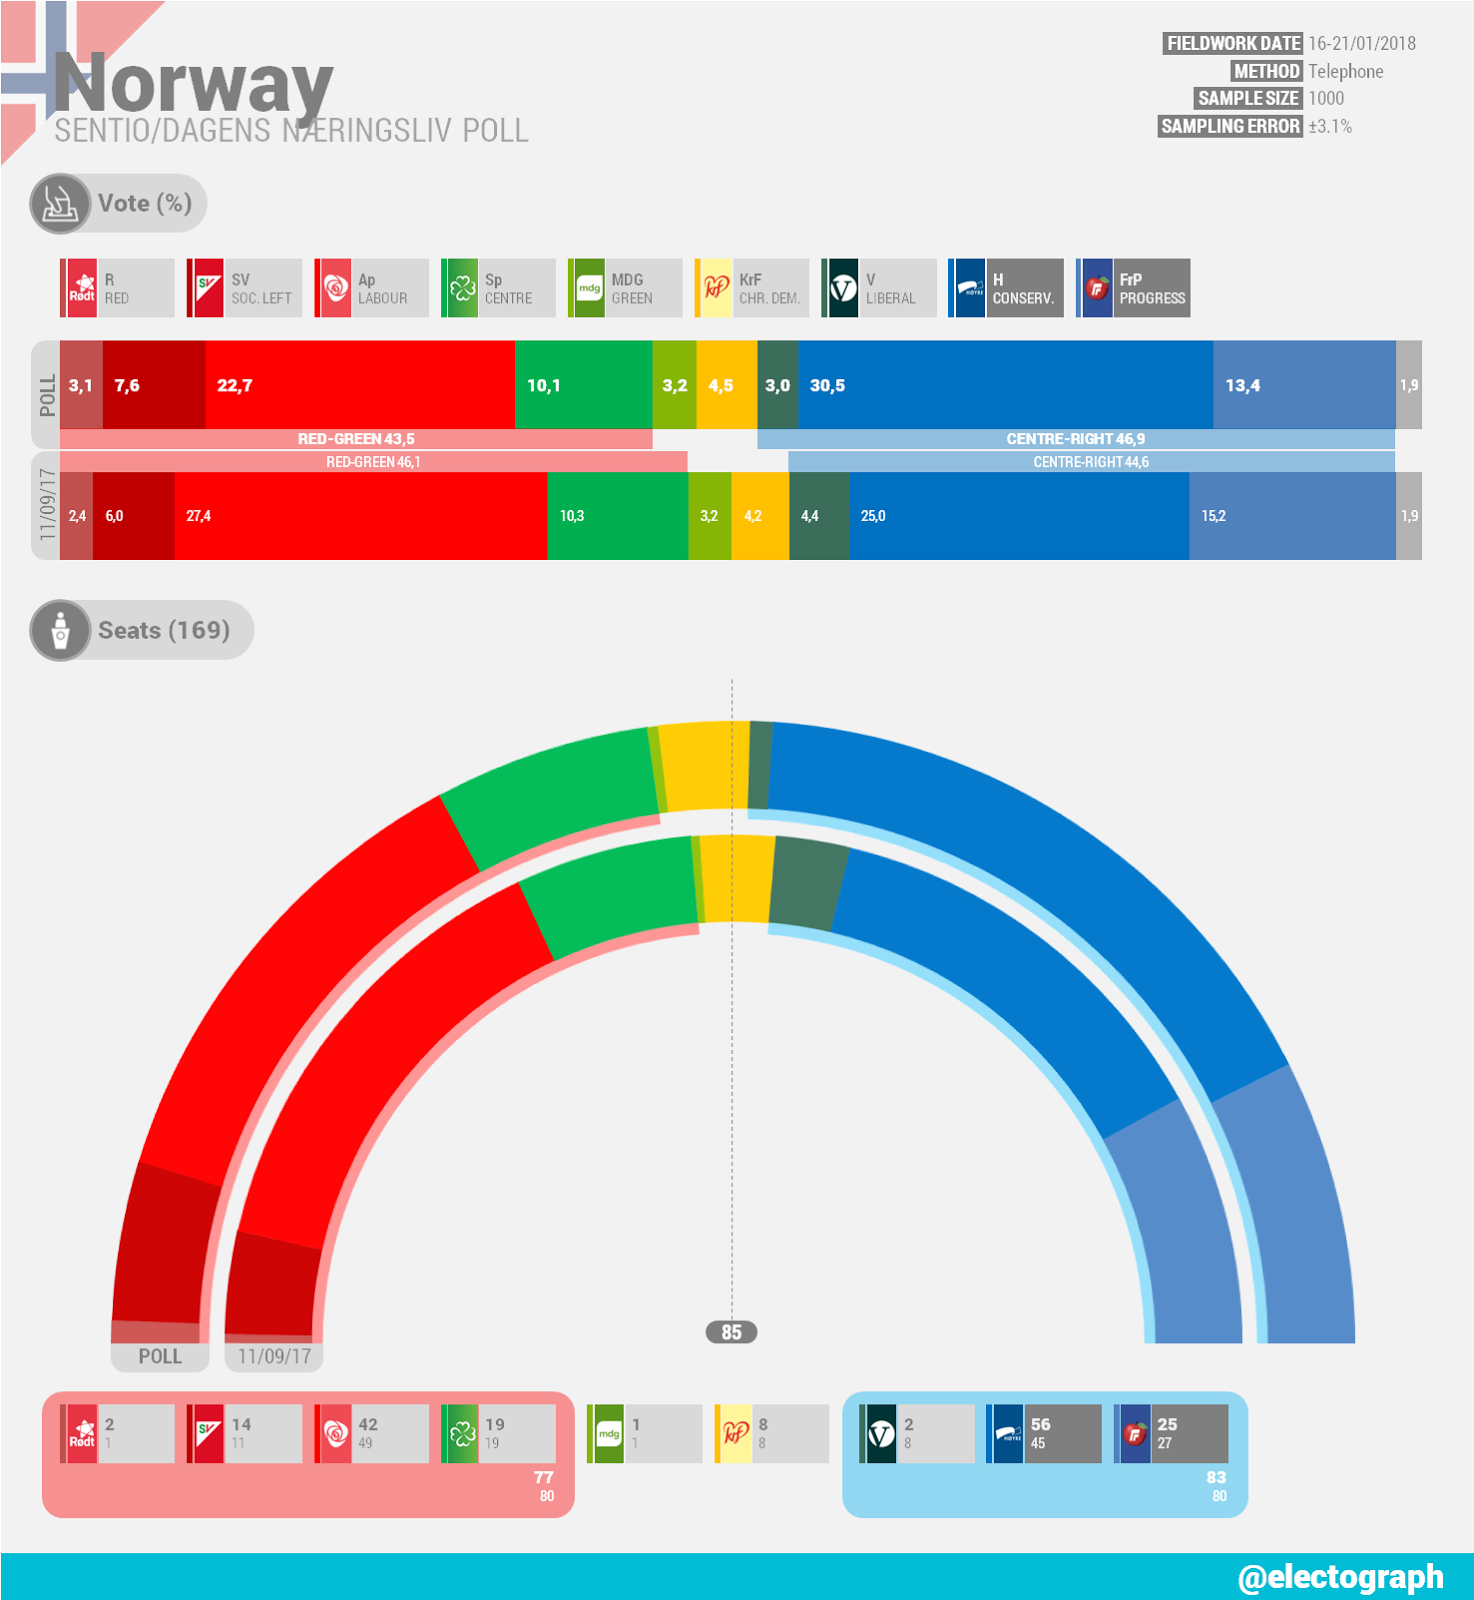 NORWAY Sentio poll chart for Dagens Næringsliv, January 2018